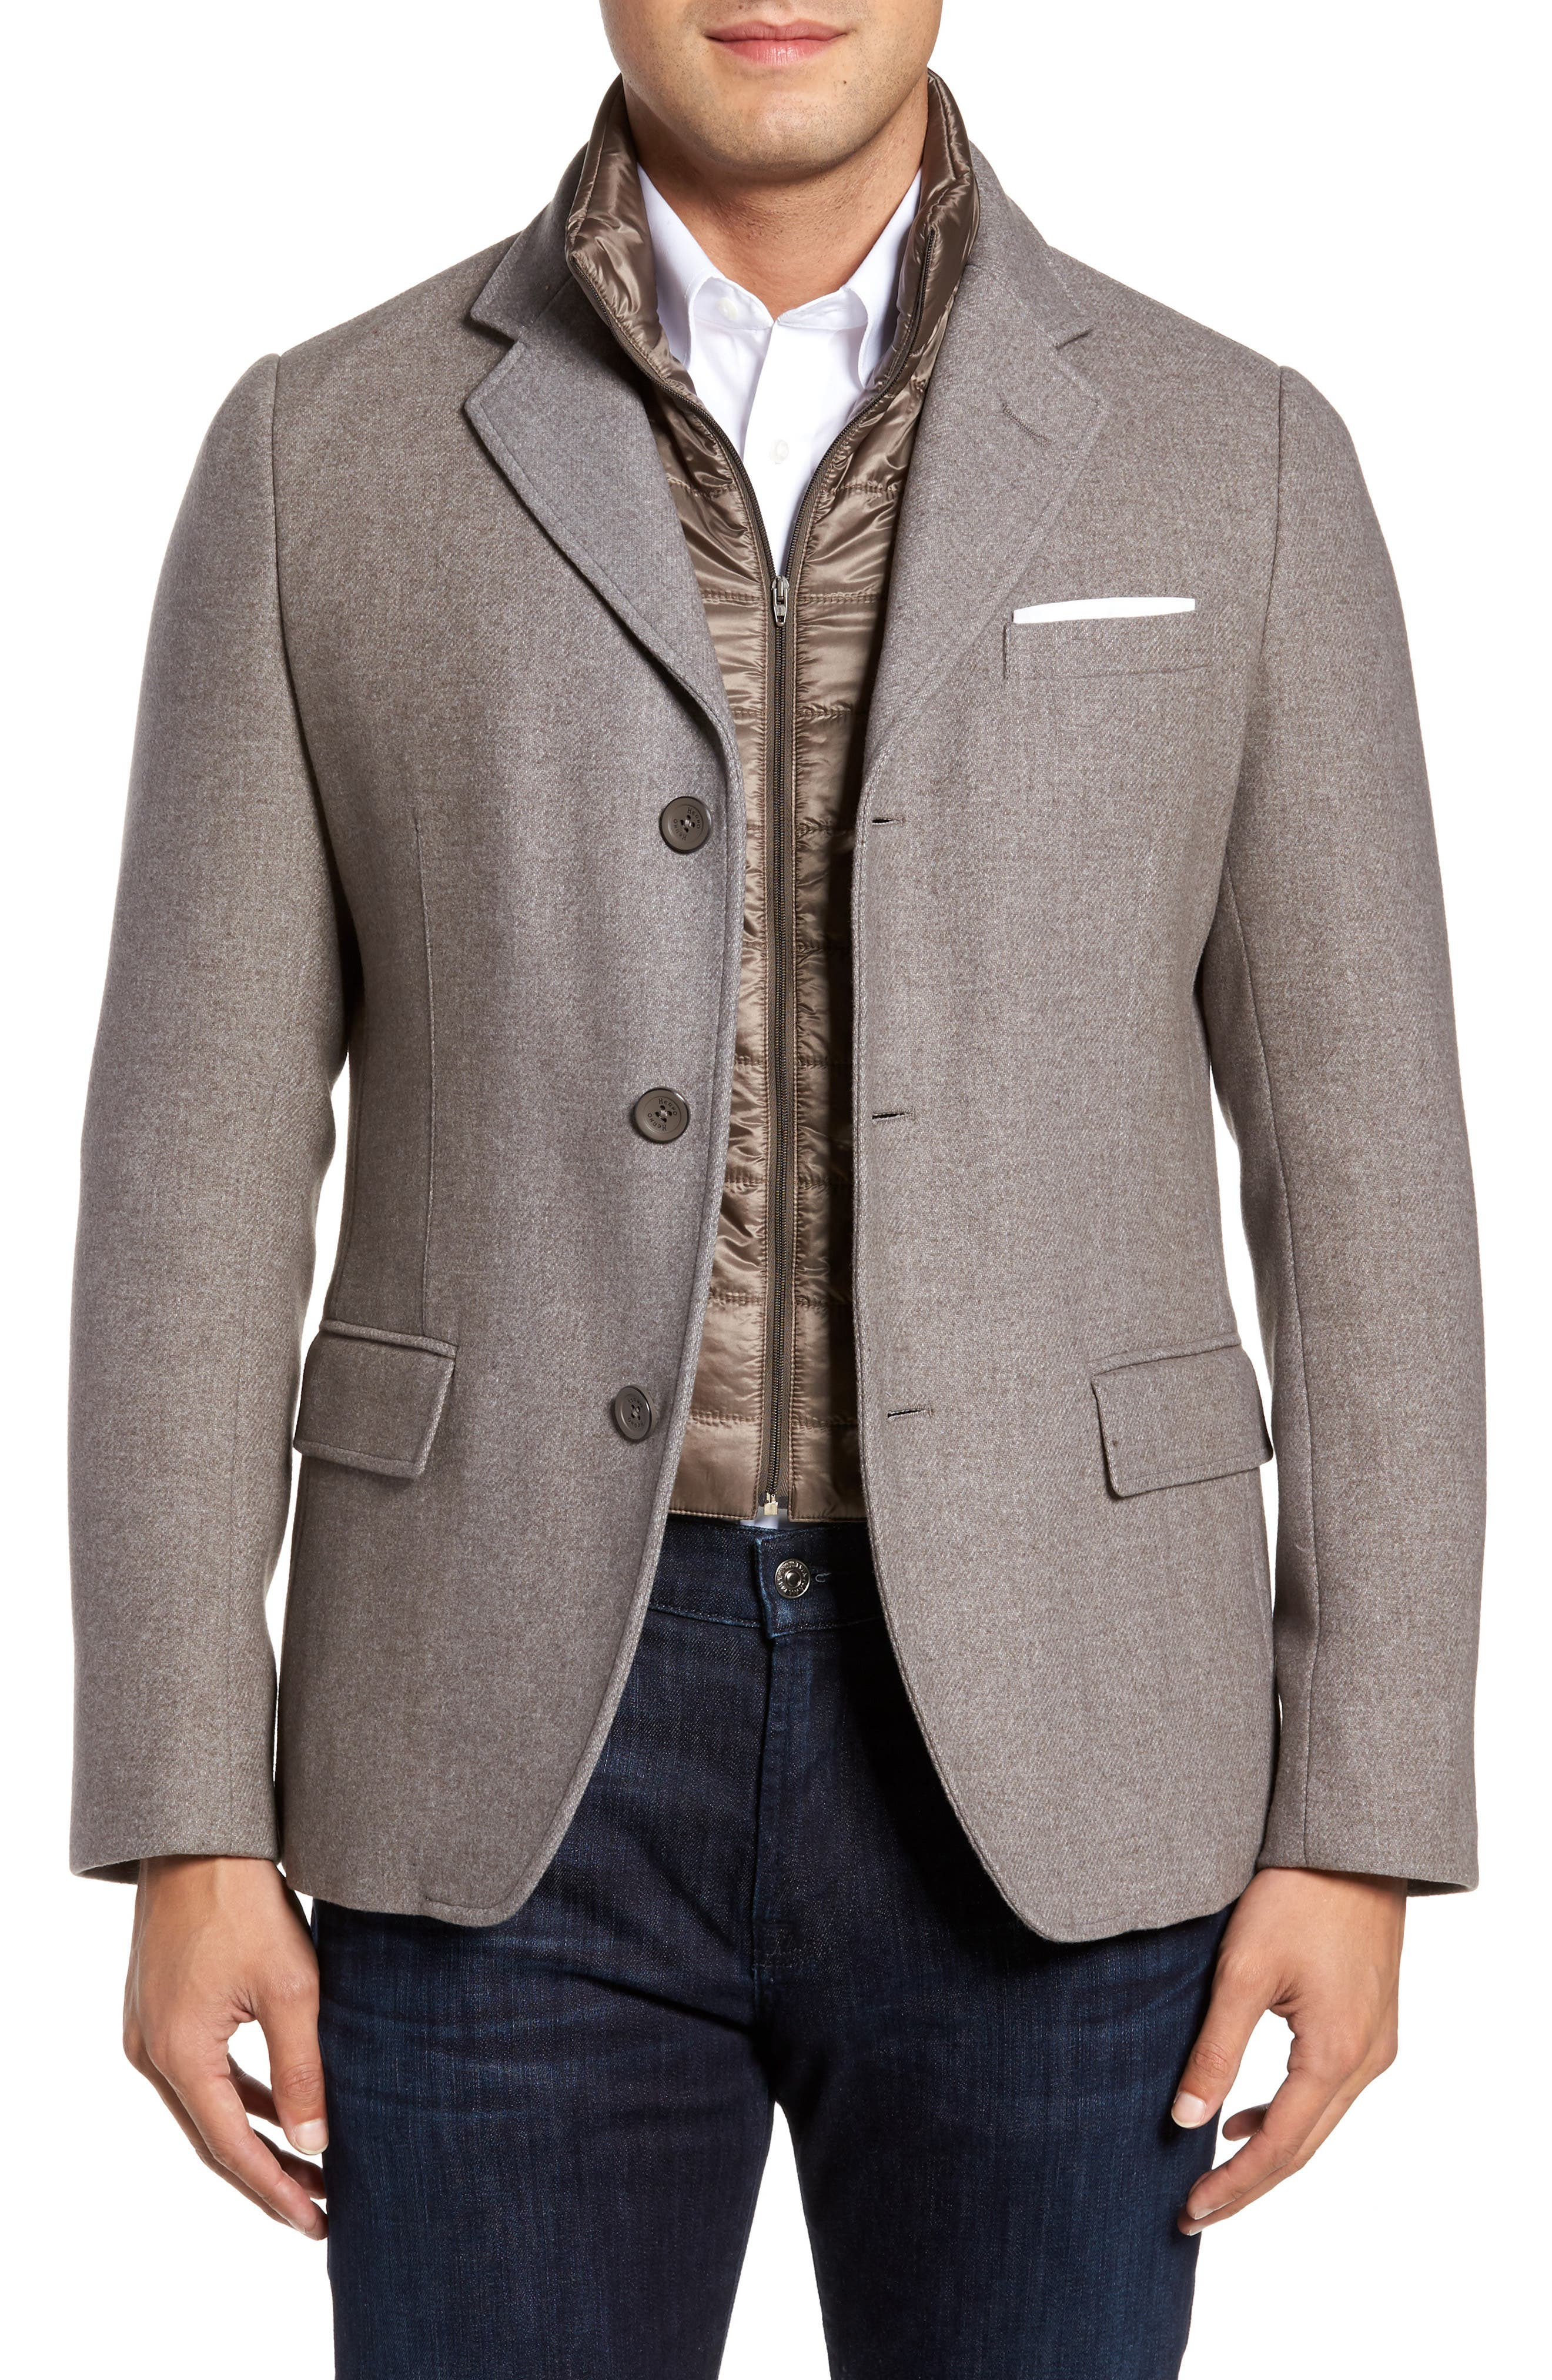 Wool Blend Blazer with Removable Quilted Bib,                         Main,                         color, Oatmeal